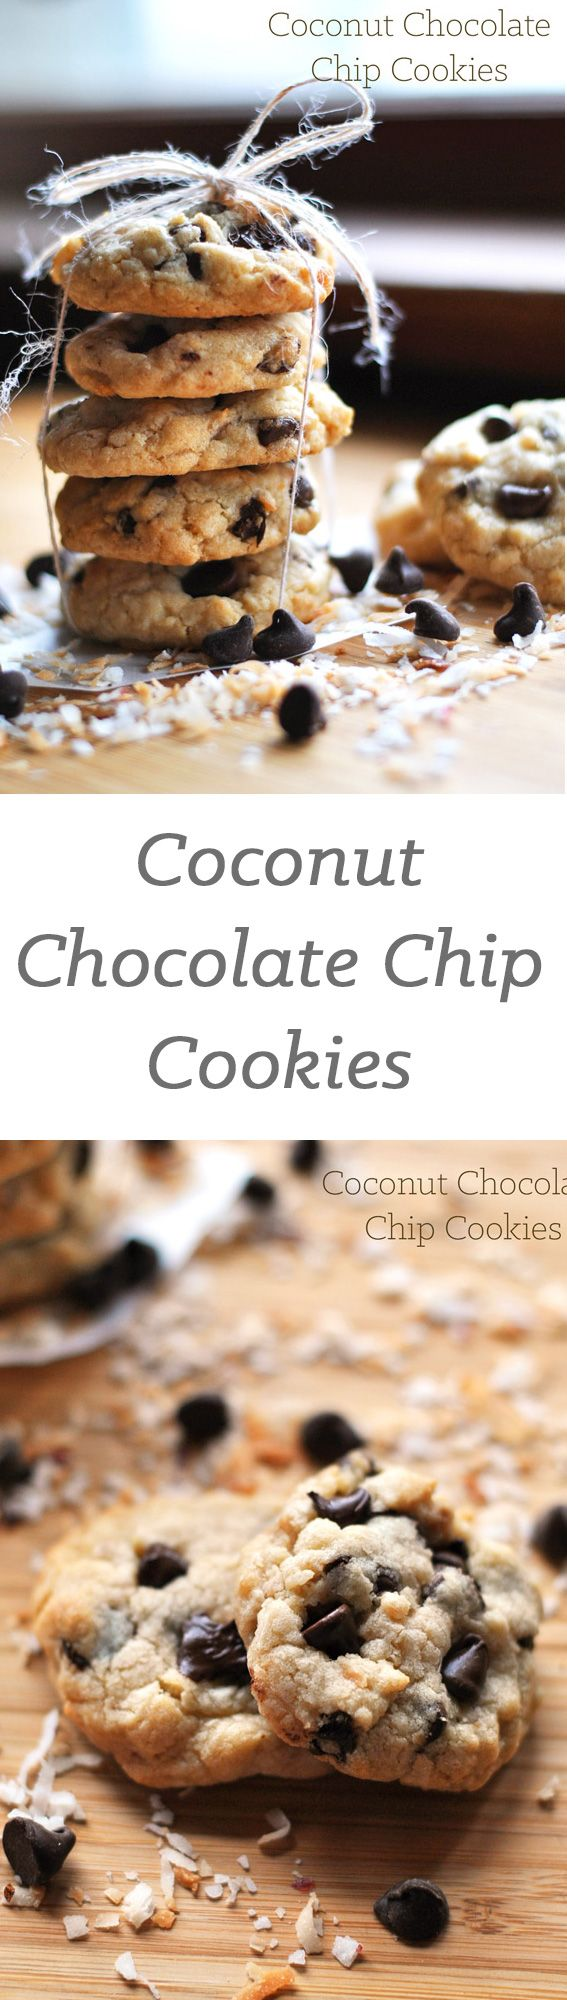 These coconut chocolate chip cookies are a delicious twist on the traditional chocolate chip cookie. An irresistibly easy cookie recipe you will love.